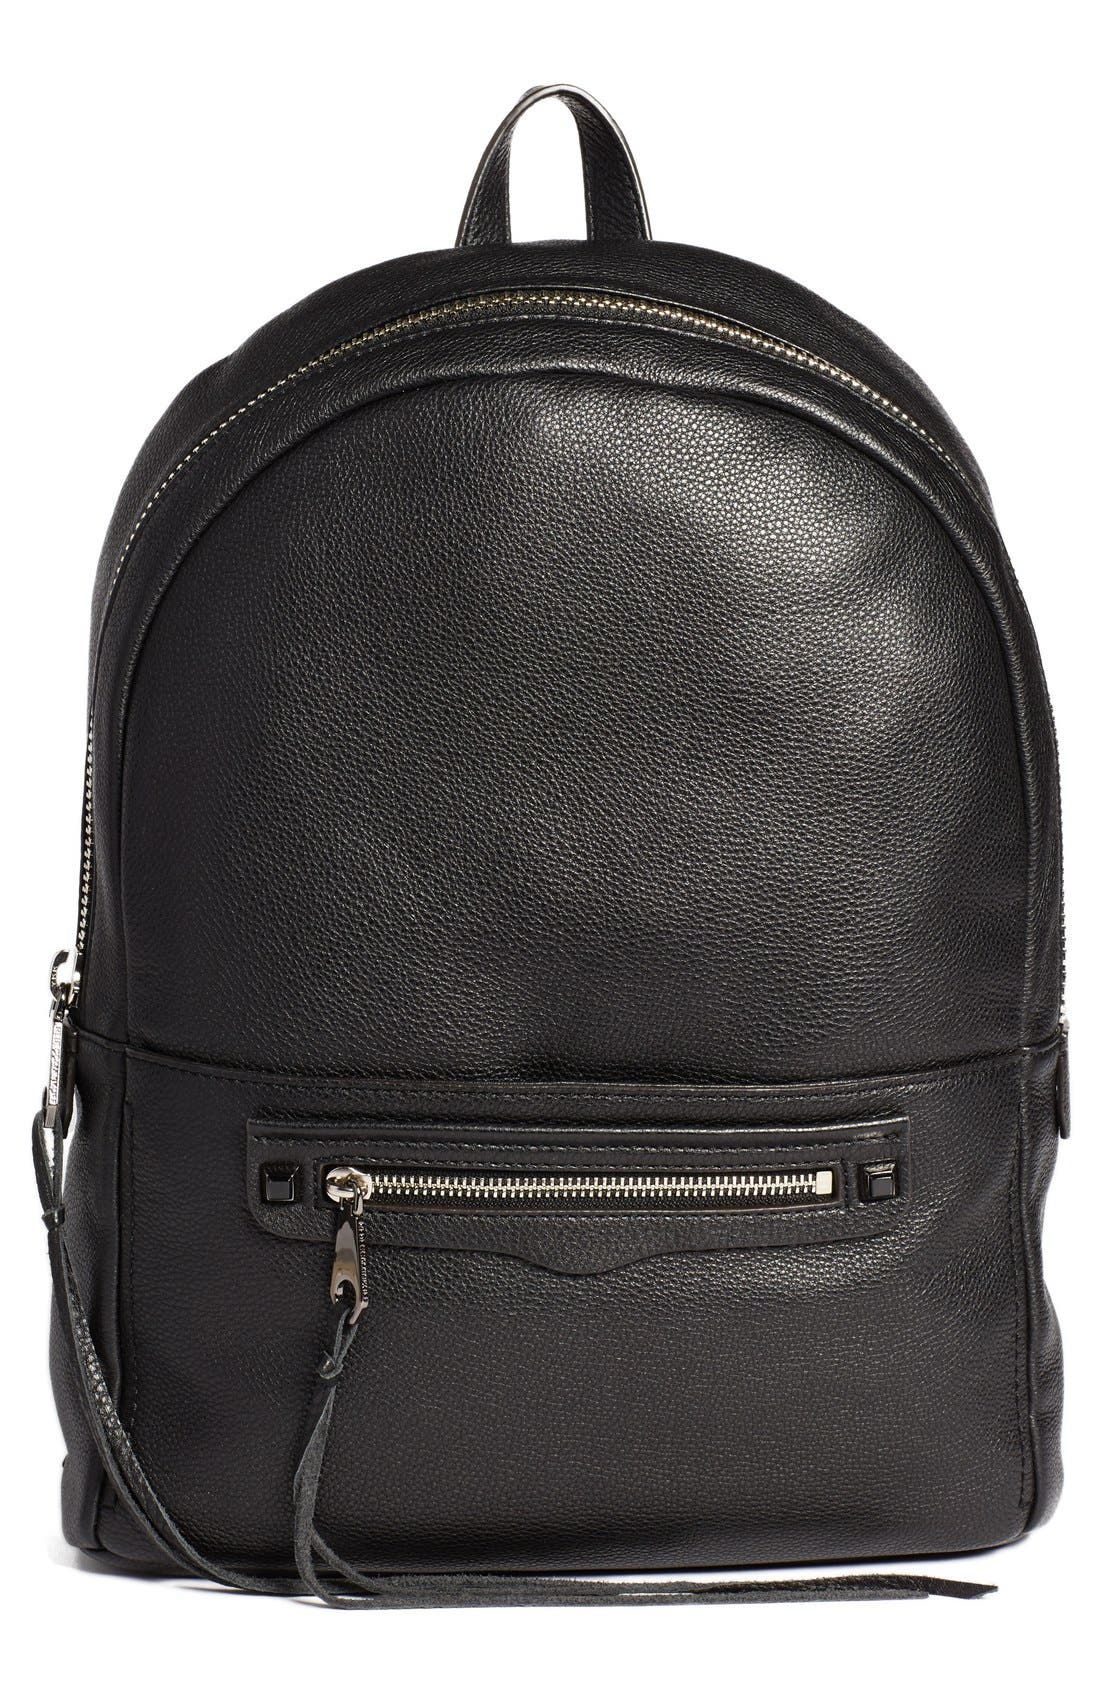 Main Image - Rebecca Minkoff 'Always On Regan' Leather Backpack